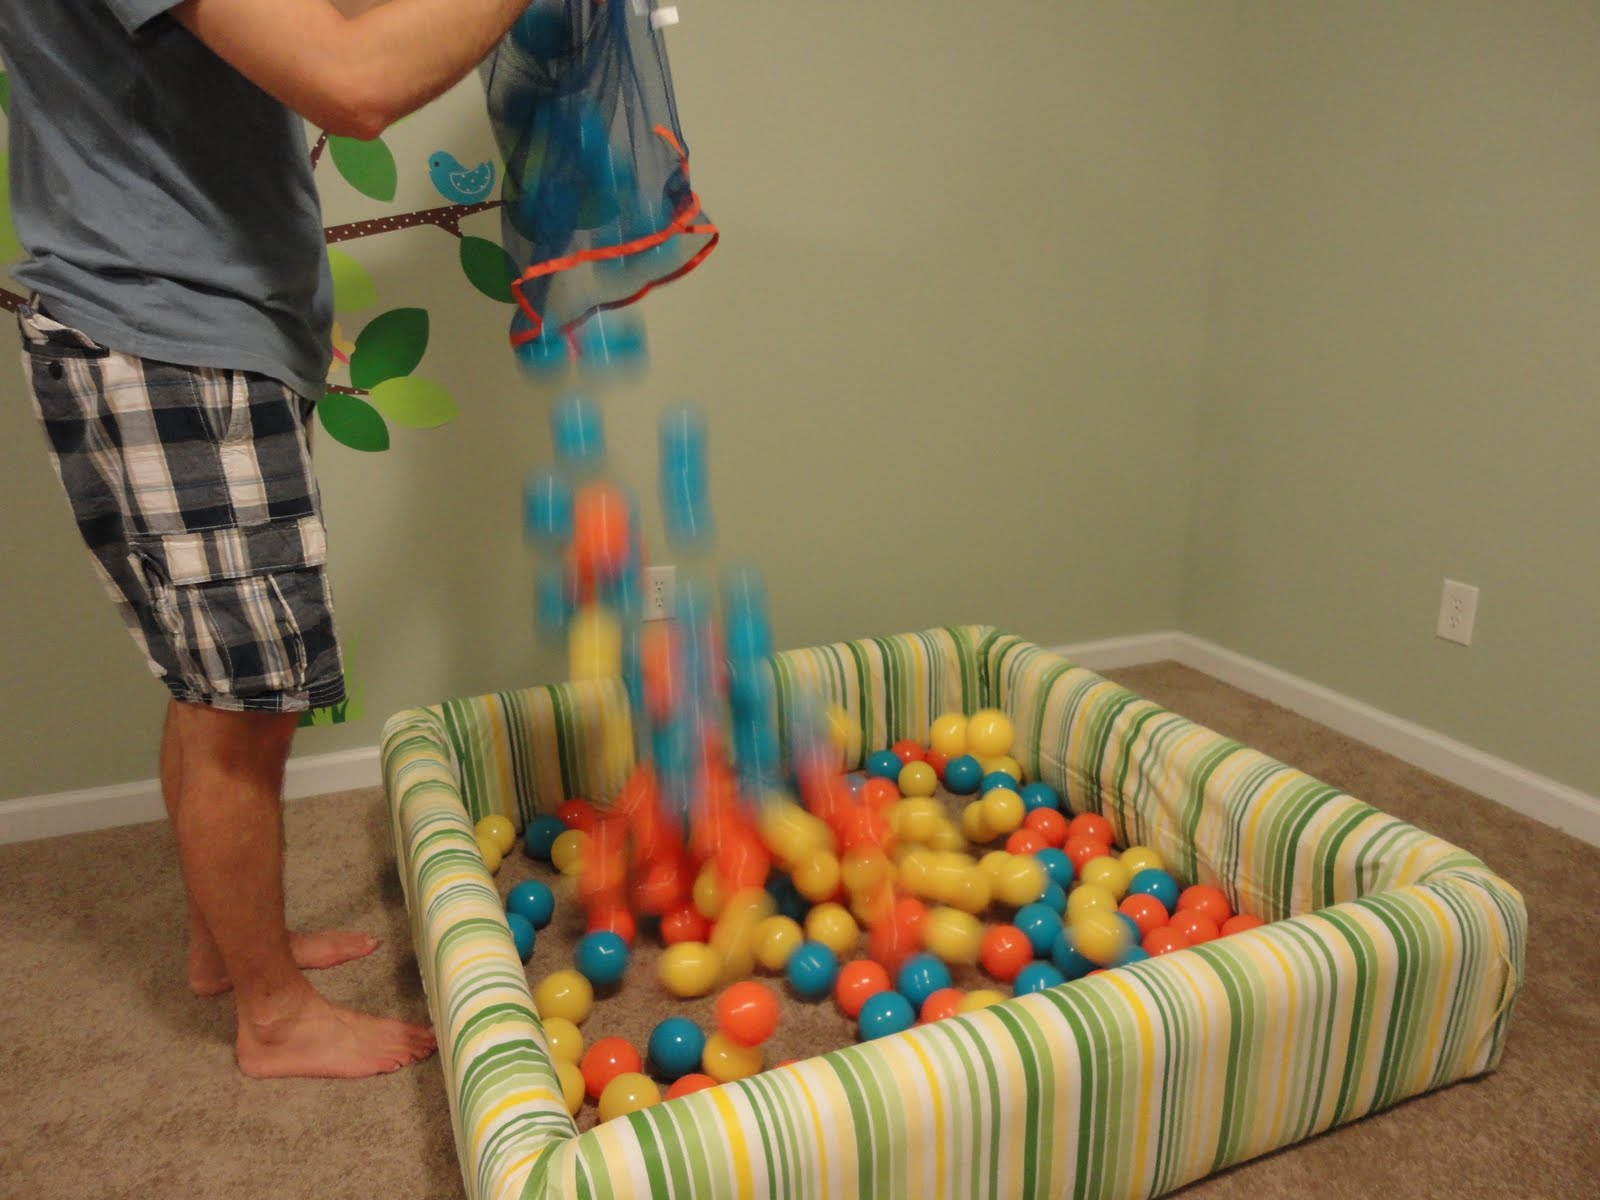 Our Life How To Build A Ball Pit